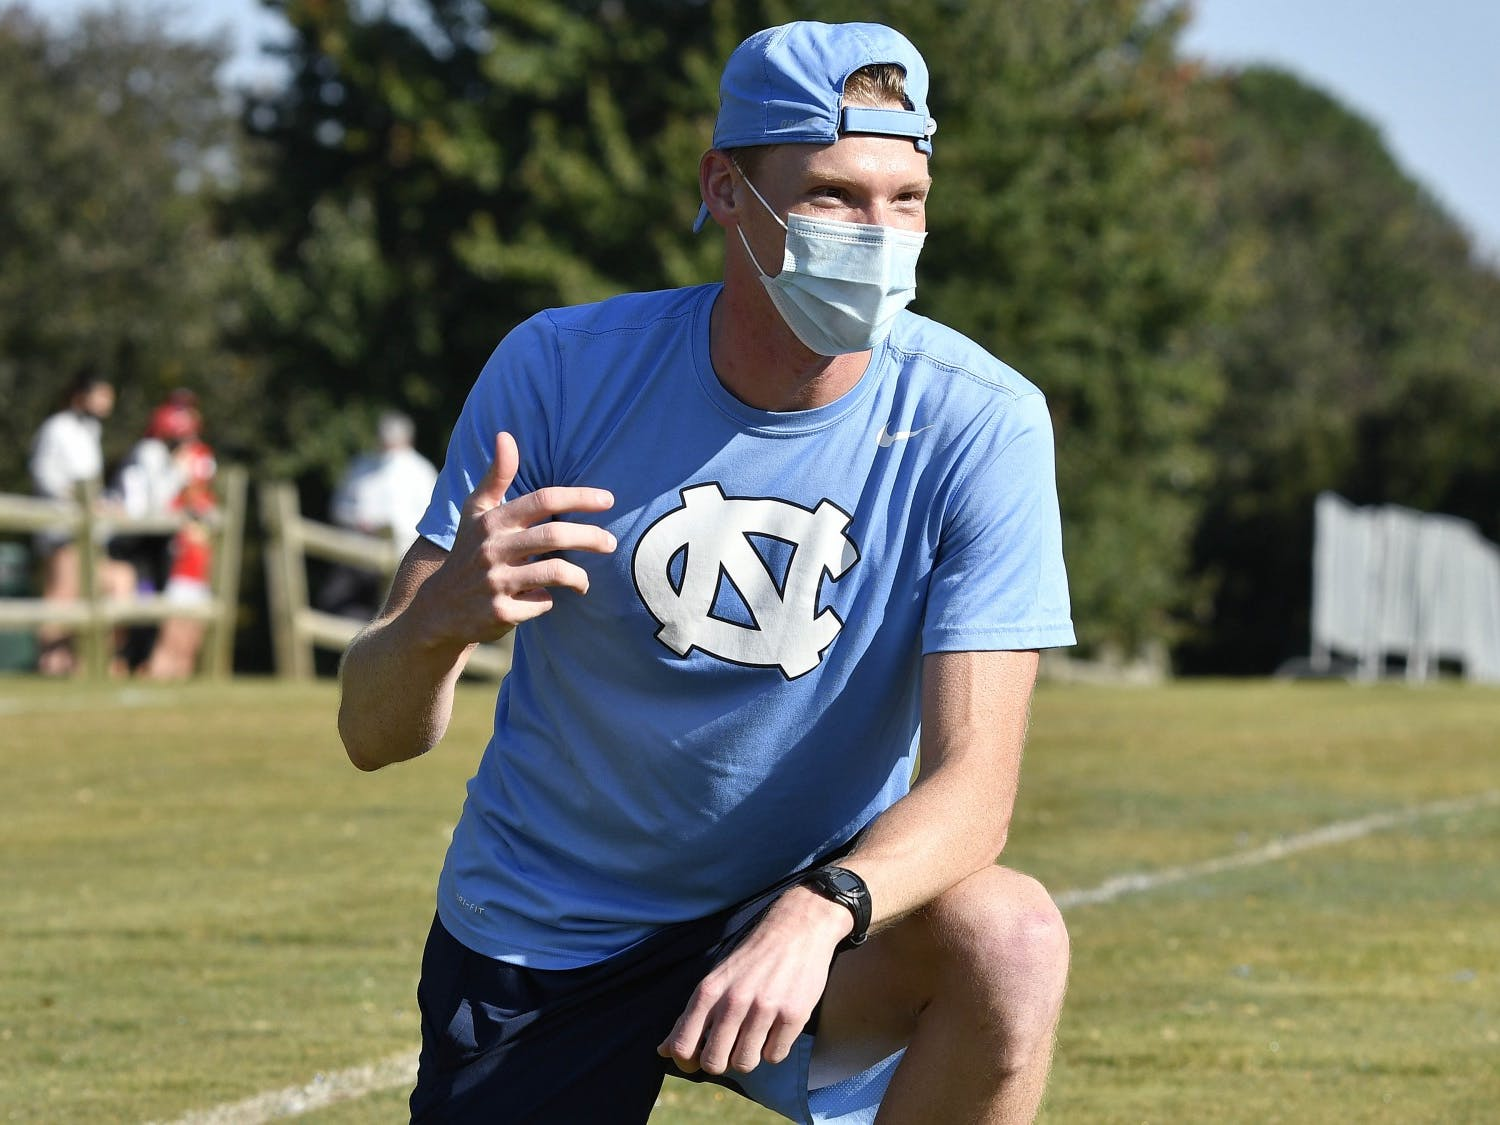 Dylan Sorensen coaches players at the University of North Carolina Cross Country Wolfpack Invite at the Wake Med Cross Country Course in Cary, NC on Wednesday, October 7, 2020. Photo courtesy of Jeffrey A. Camarati/UNC Athletic Communications.